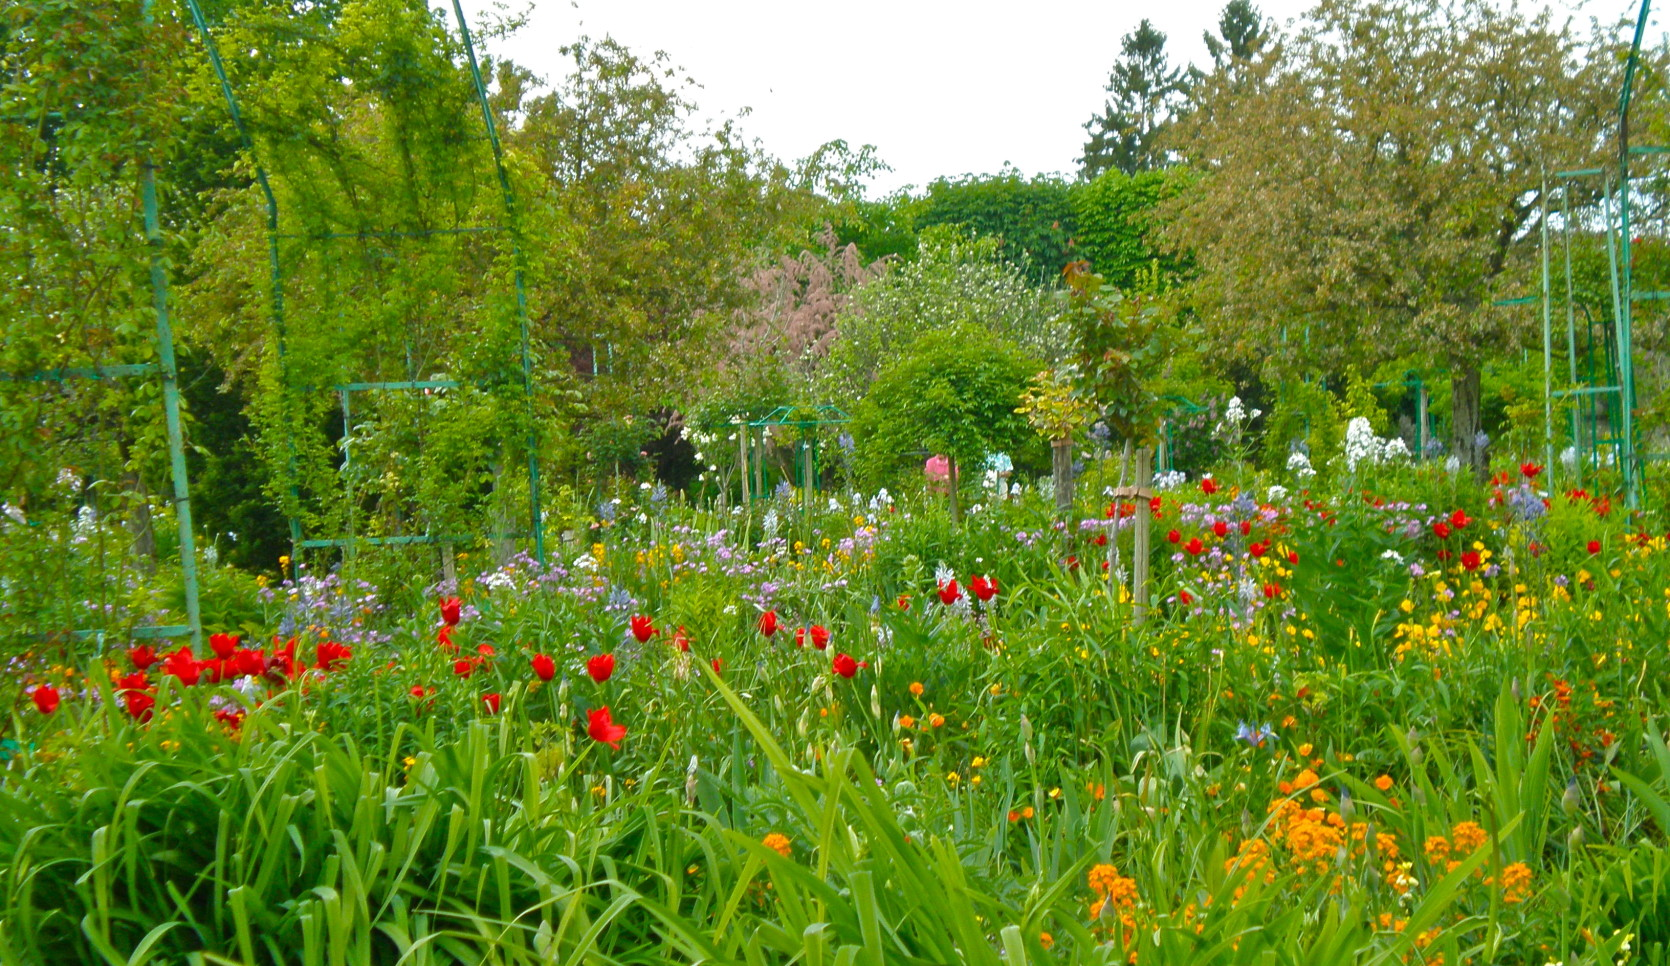 Jardins de claude monet giverny annectar 39 s room for Jardines de monet